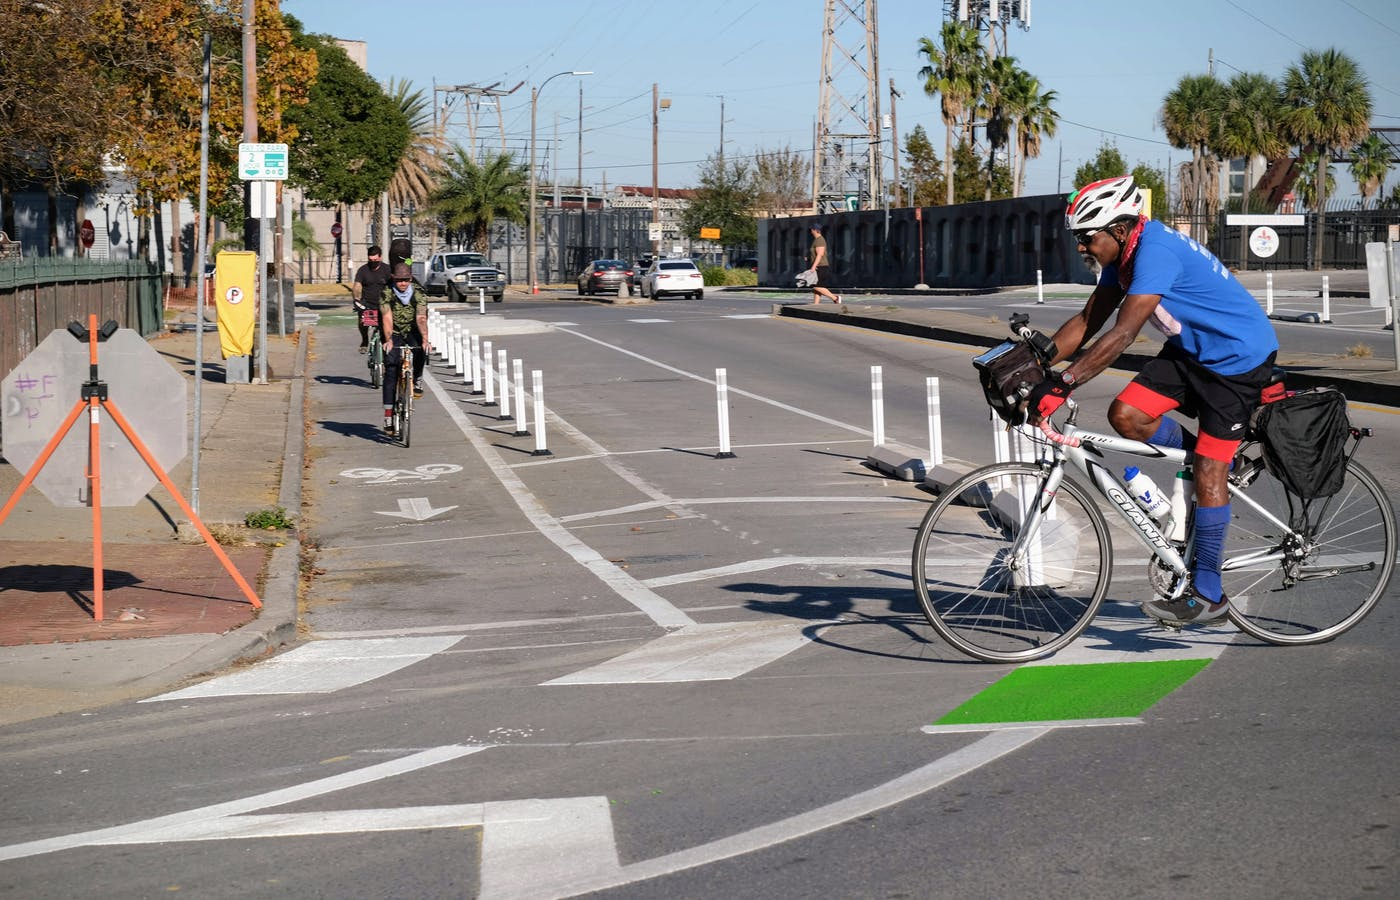 A protected bike lane in New Orleans, Louisiana.